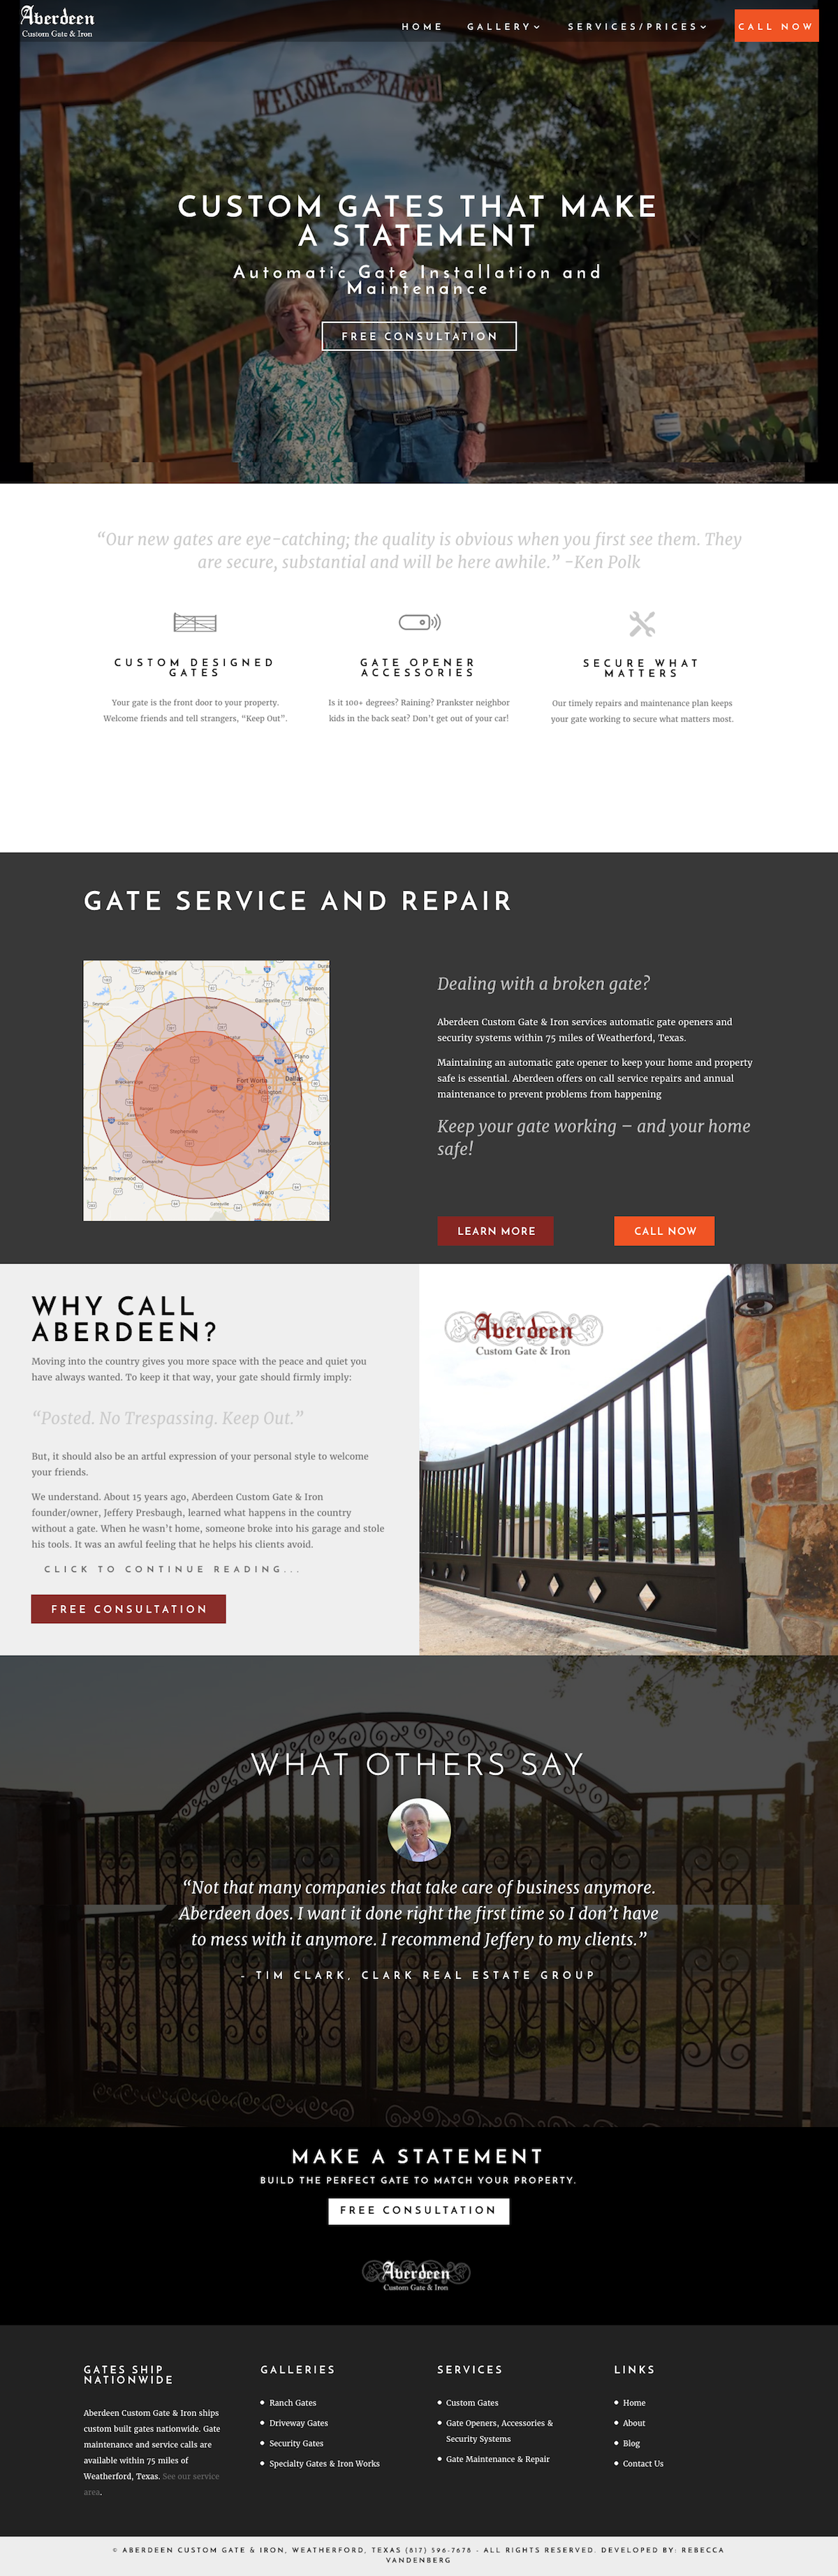 Aberdeen Custom Gate Weatherford Texas Wiring Diagram Besides Electric Sliding Diagrams